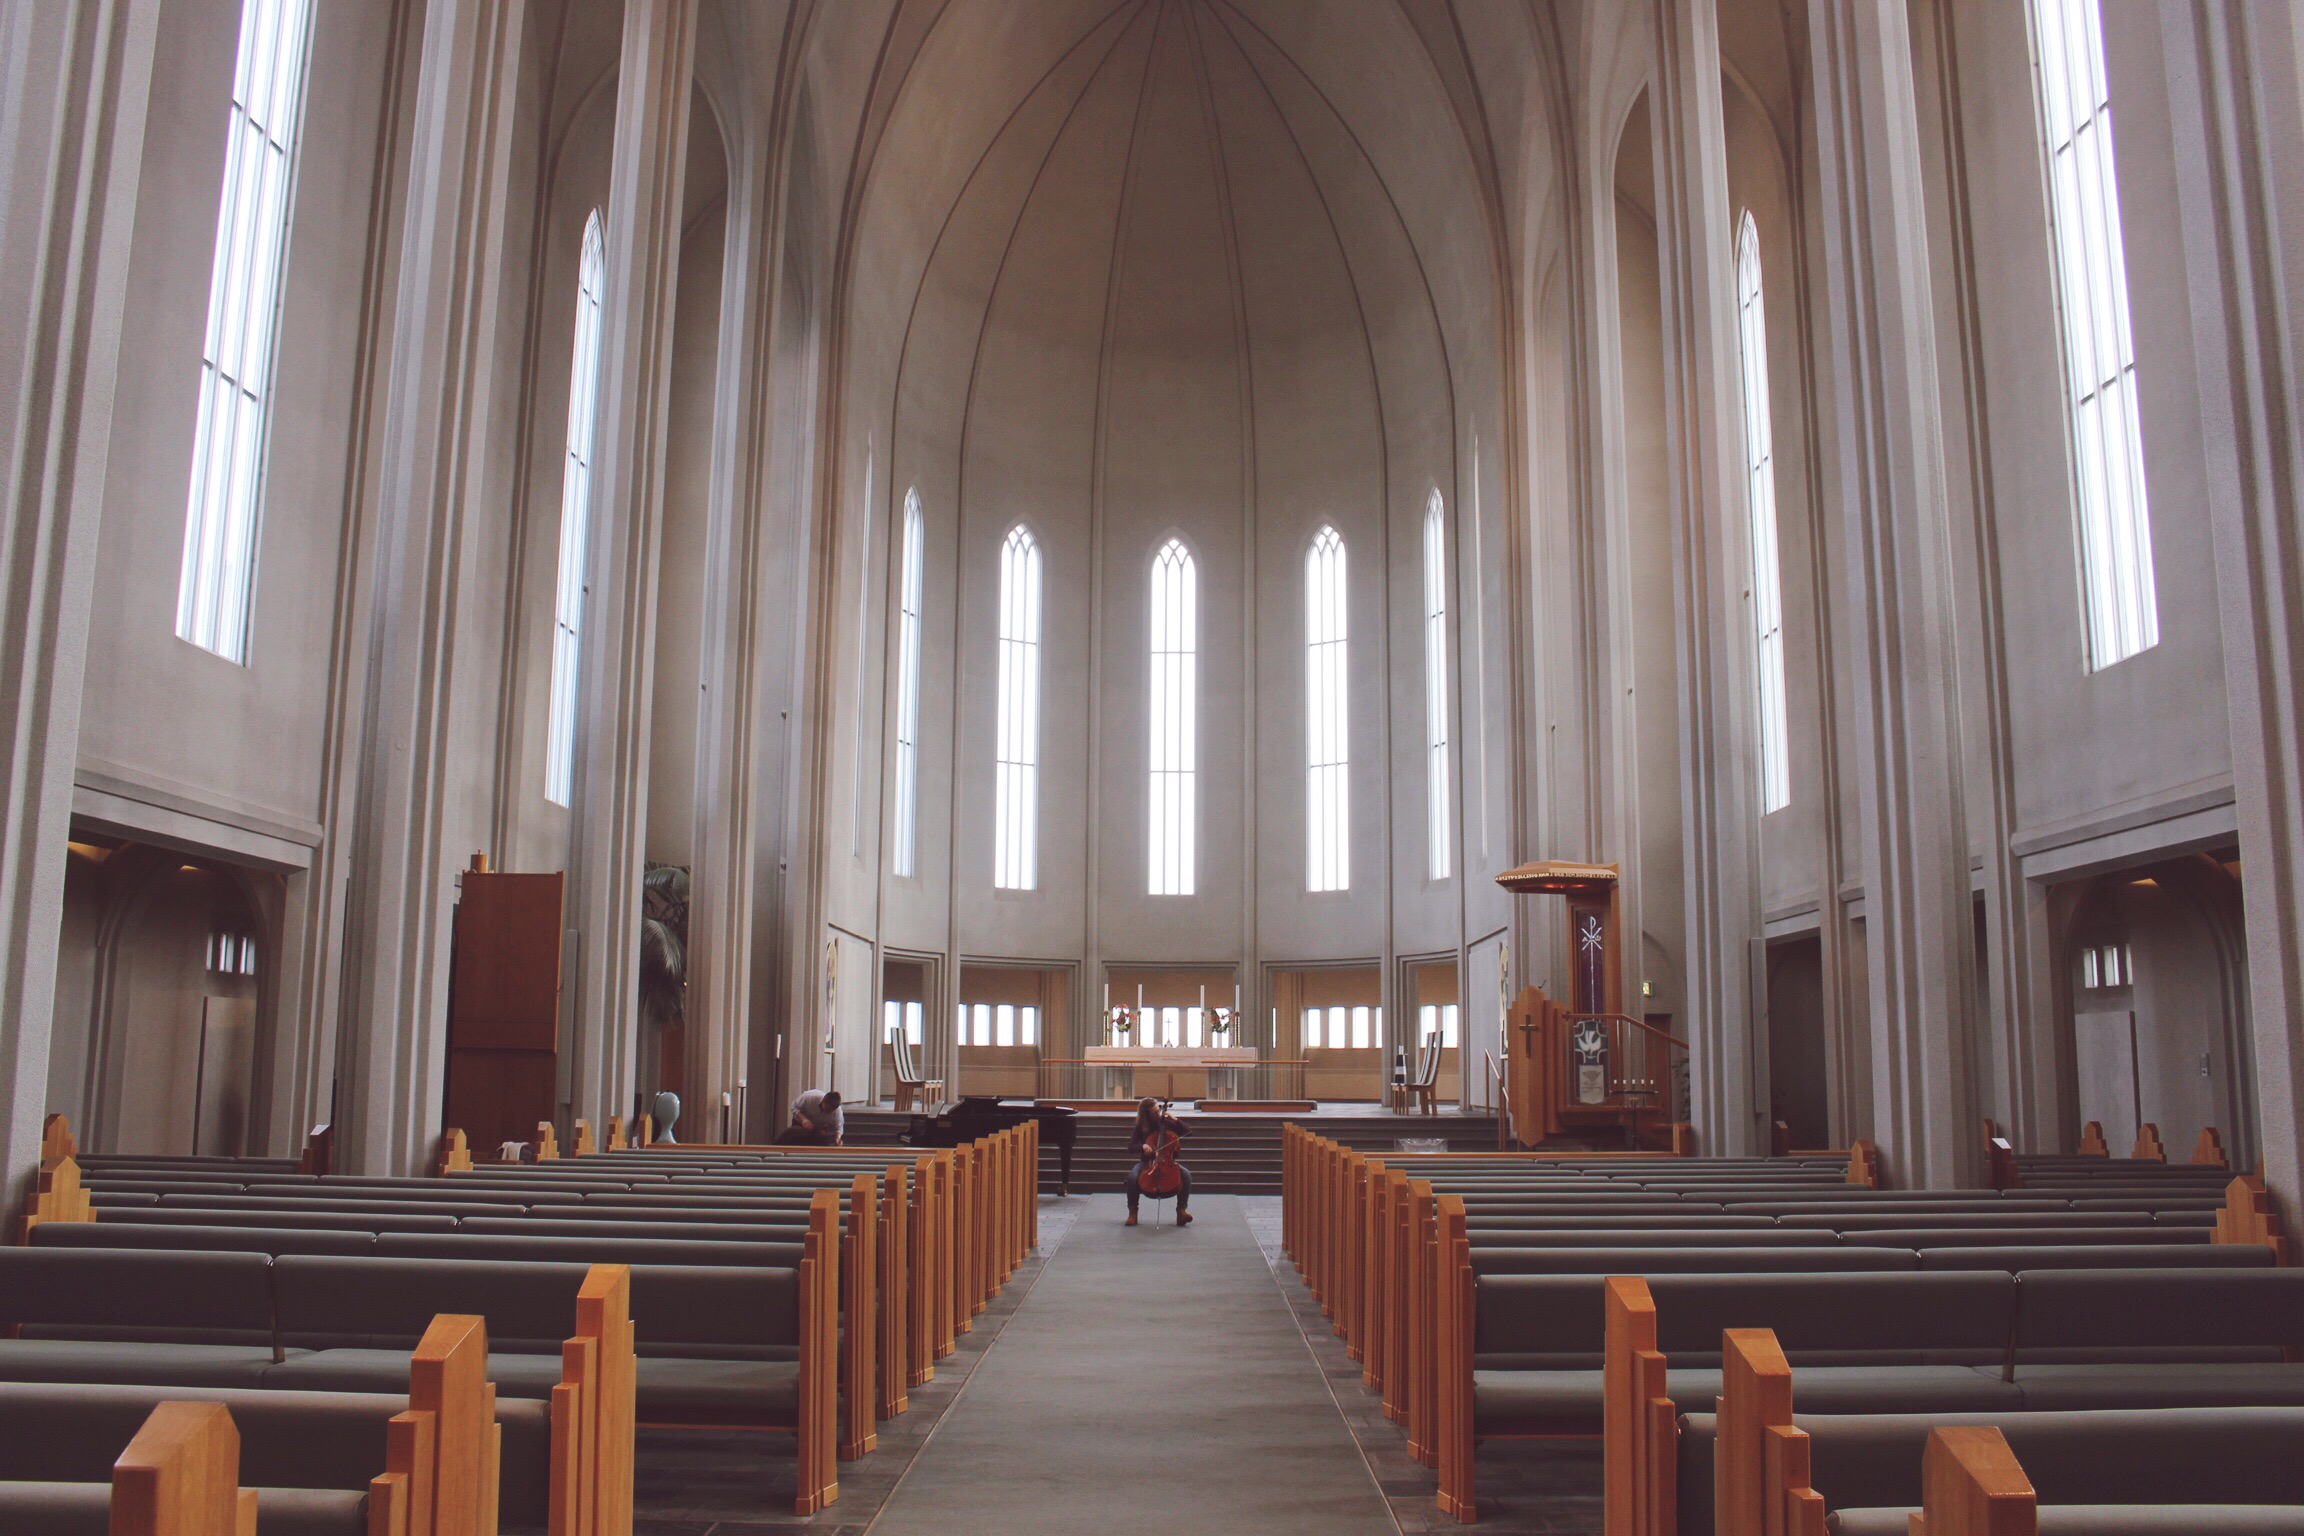 The peaceful interior of the church. Photo: Connected to India